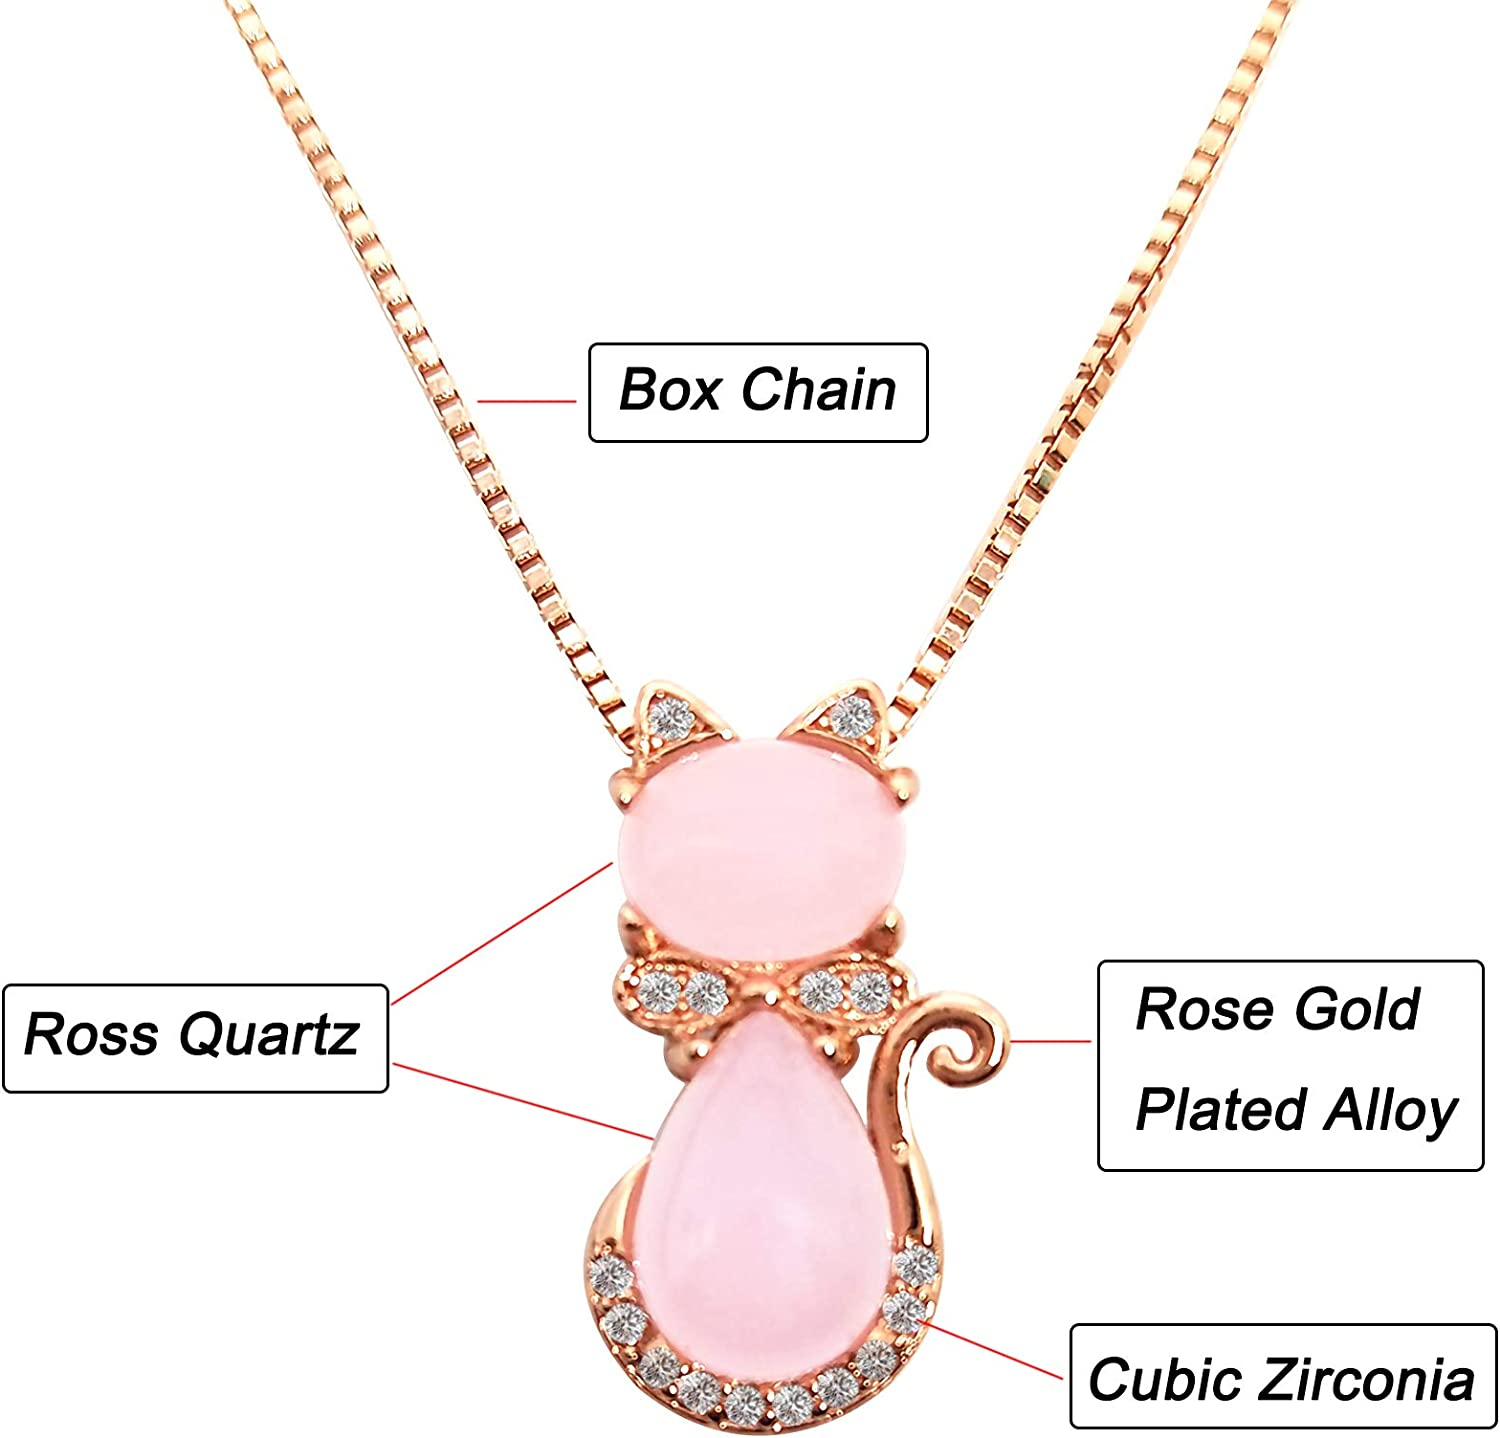 Cinsionze Little Girls Cute Cat Kitten Pendant Necklace Pink Rose Quartz Gemstone Cubic Zirconia Setting 18inch Box Chain Fashion Jewelry Short Necklace Gifts for Kids Child Daughter